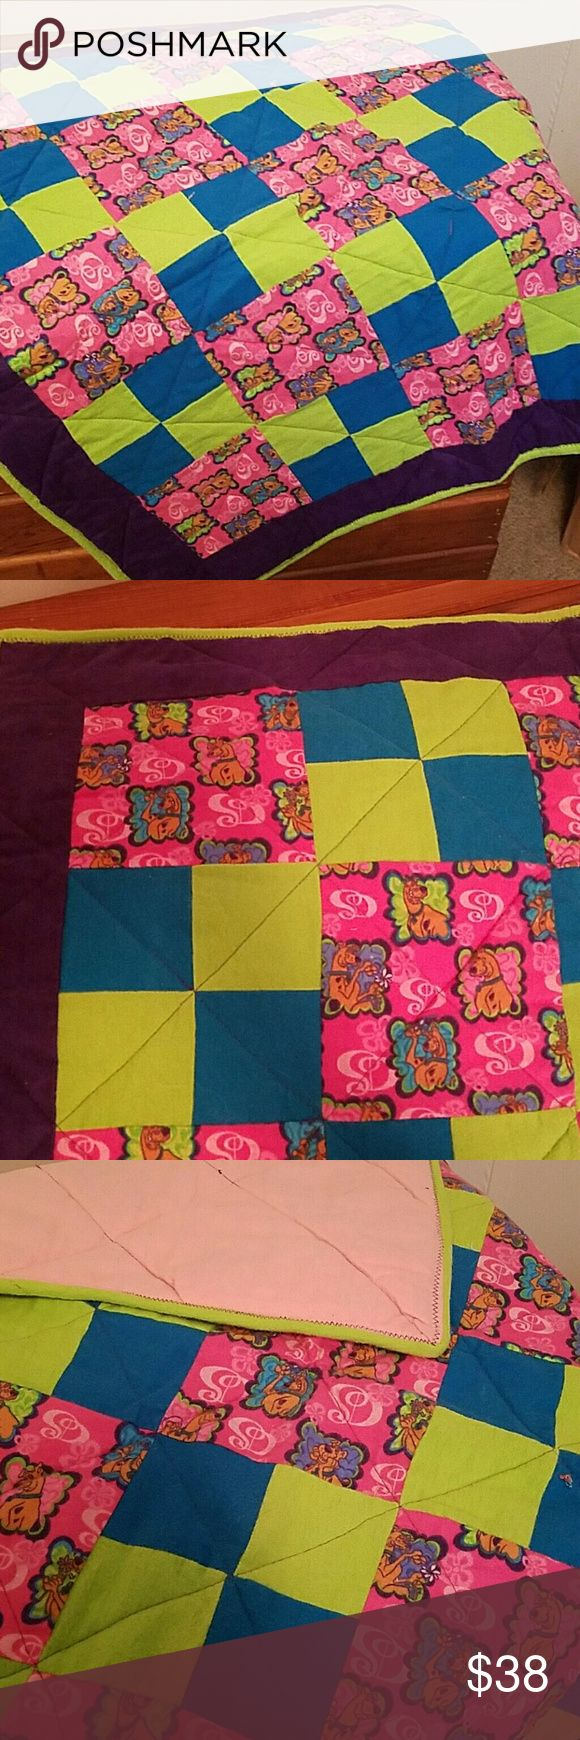 """Scooby-Doo baby blanket Handmade Scooby-Doo baby blanket/play pad. Flannel material.  Size: 32""""x63"""" Accessories"""